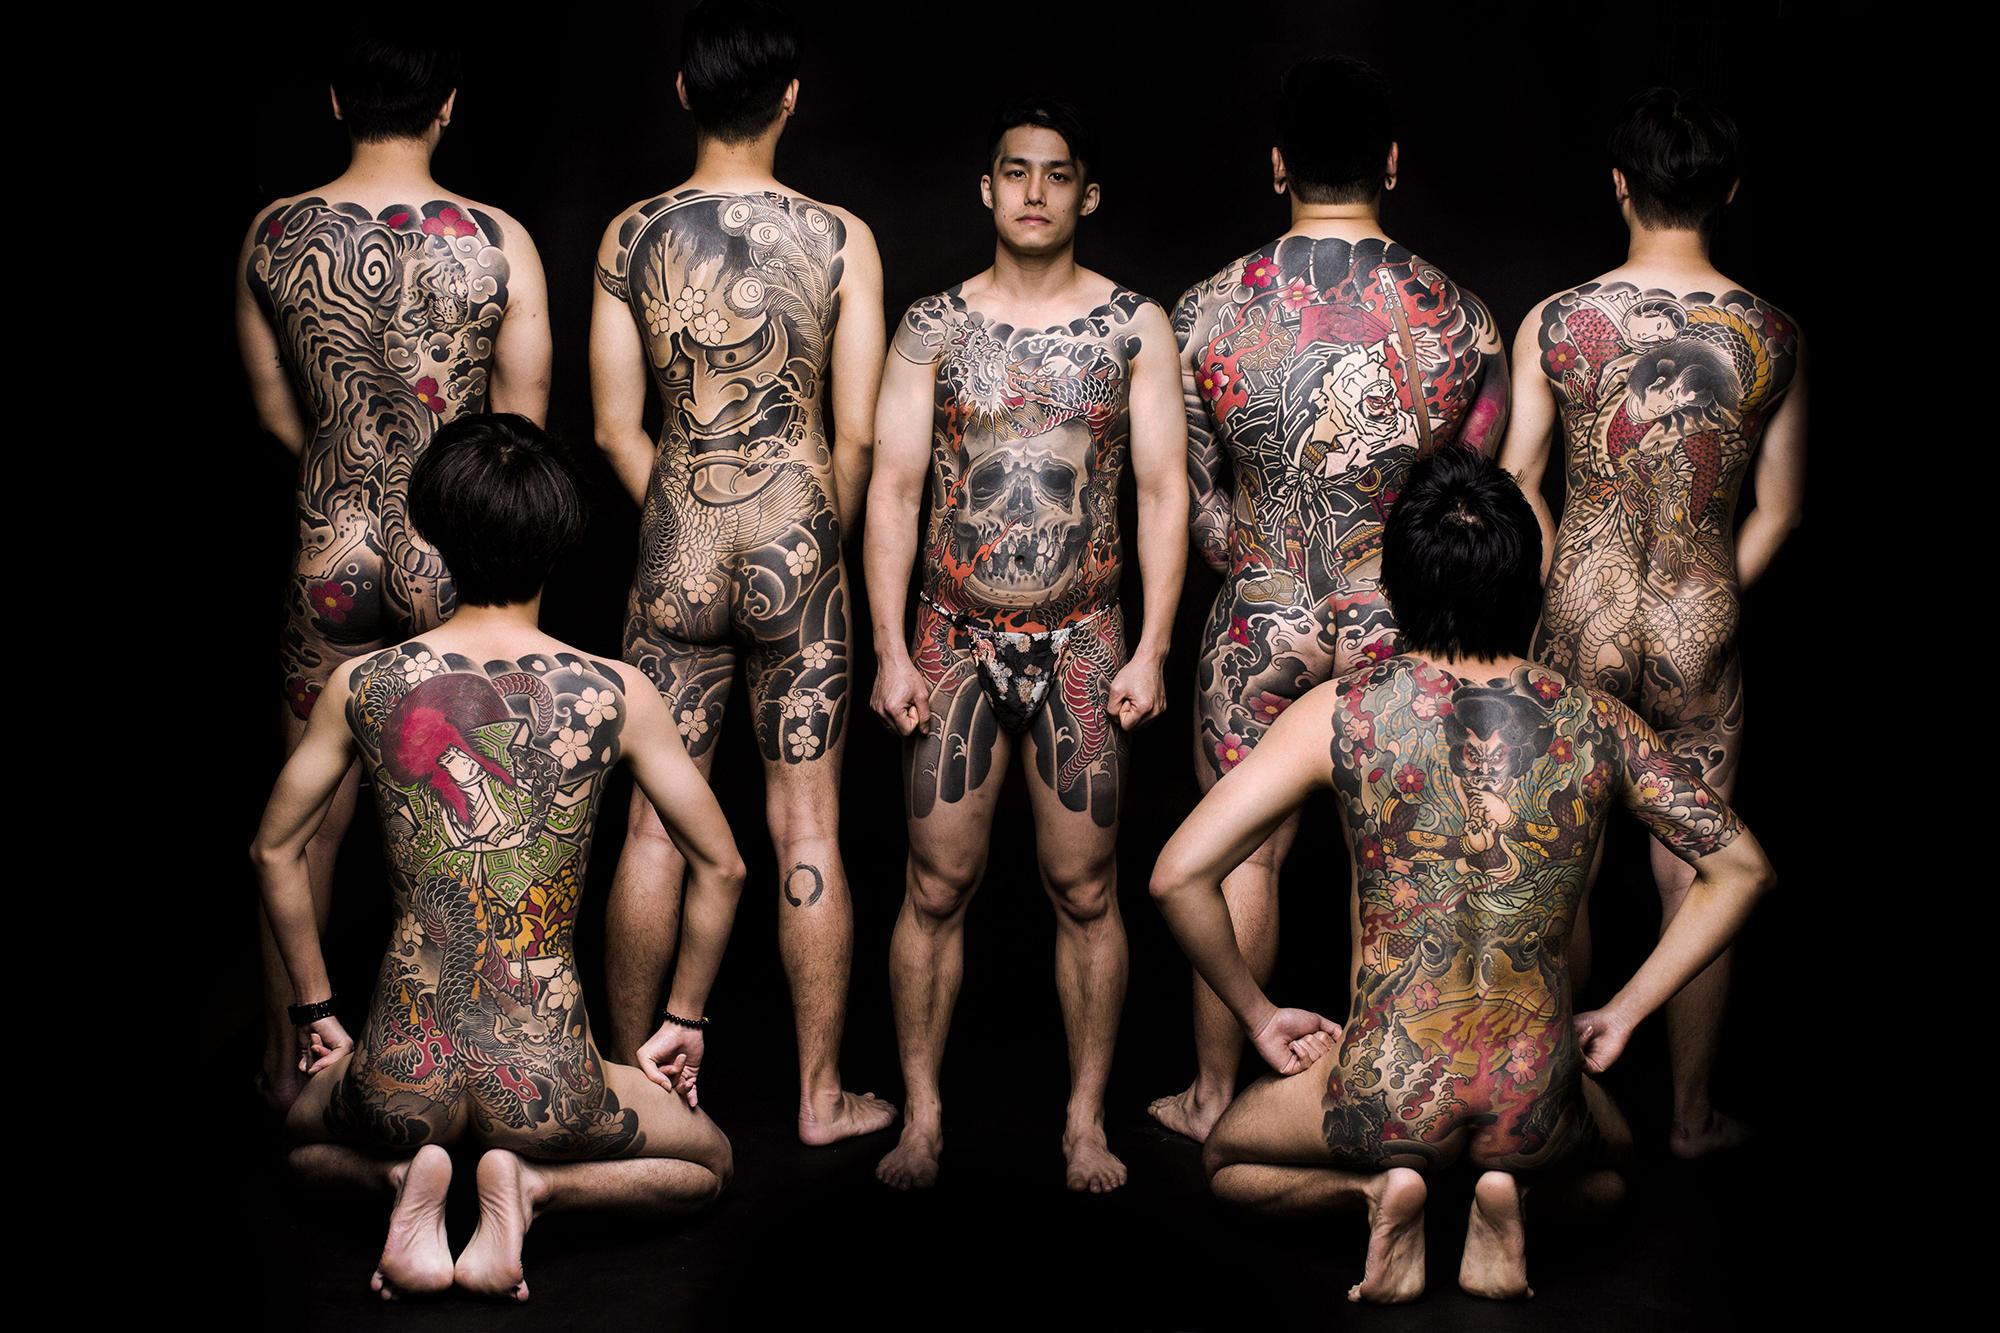 Shane Tan's chest and back tattoos; photograph by Jana Yar.